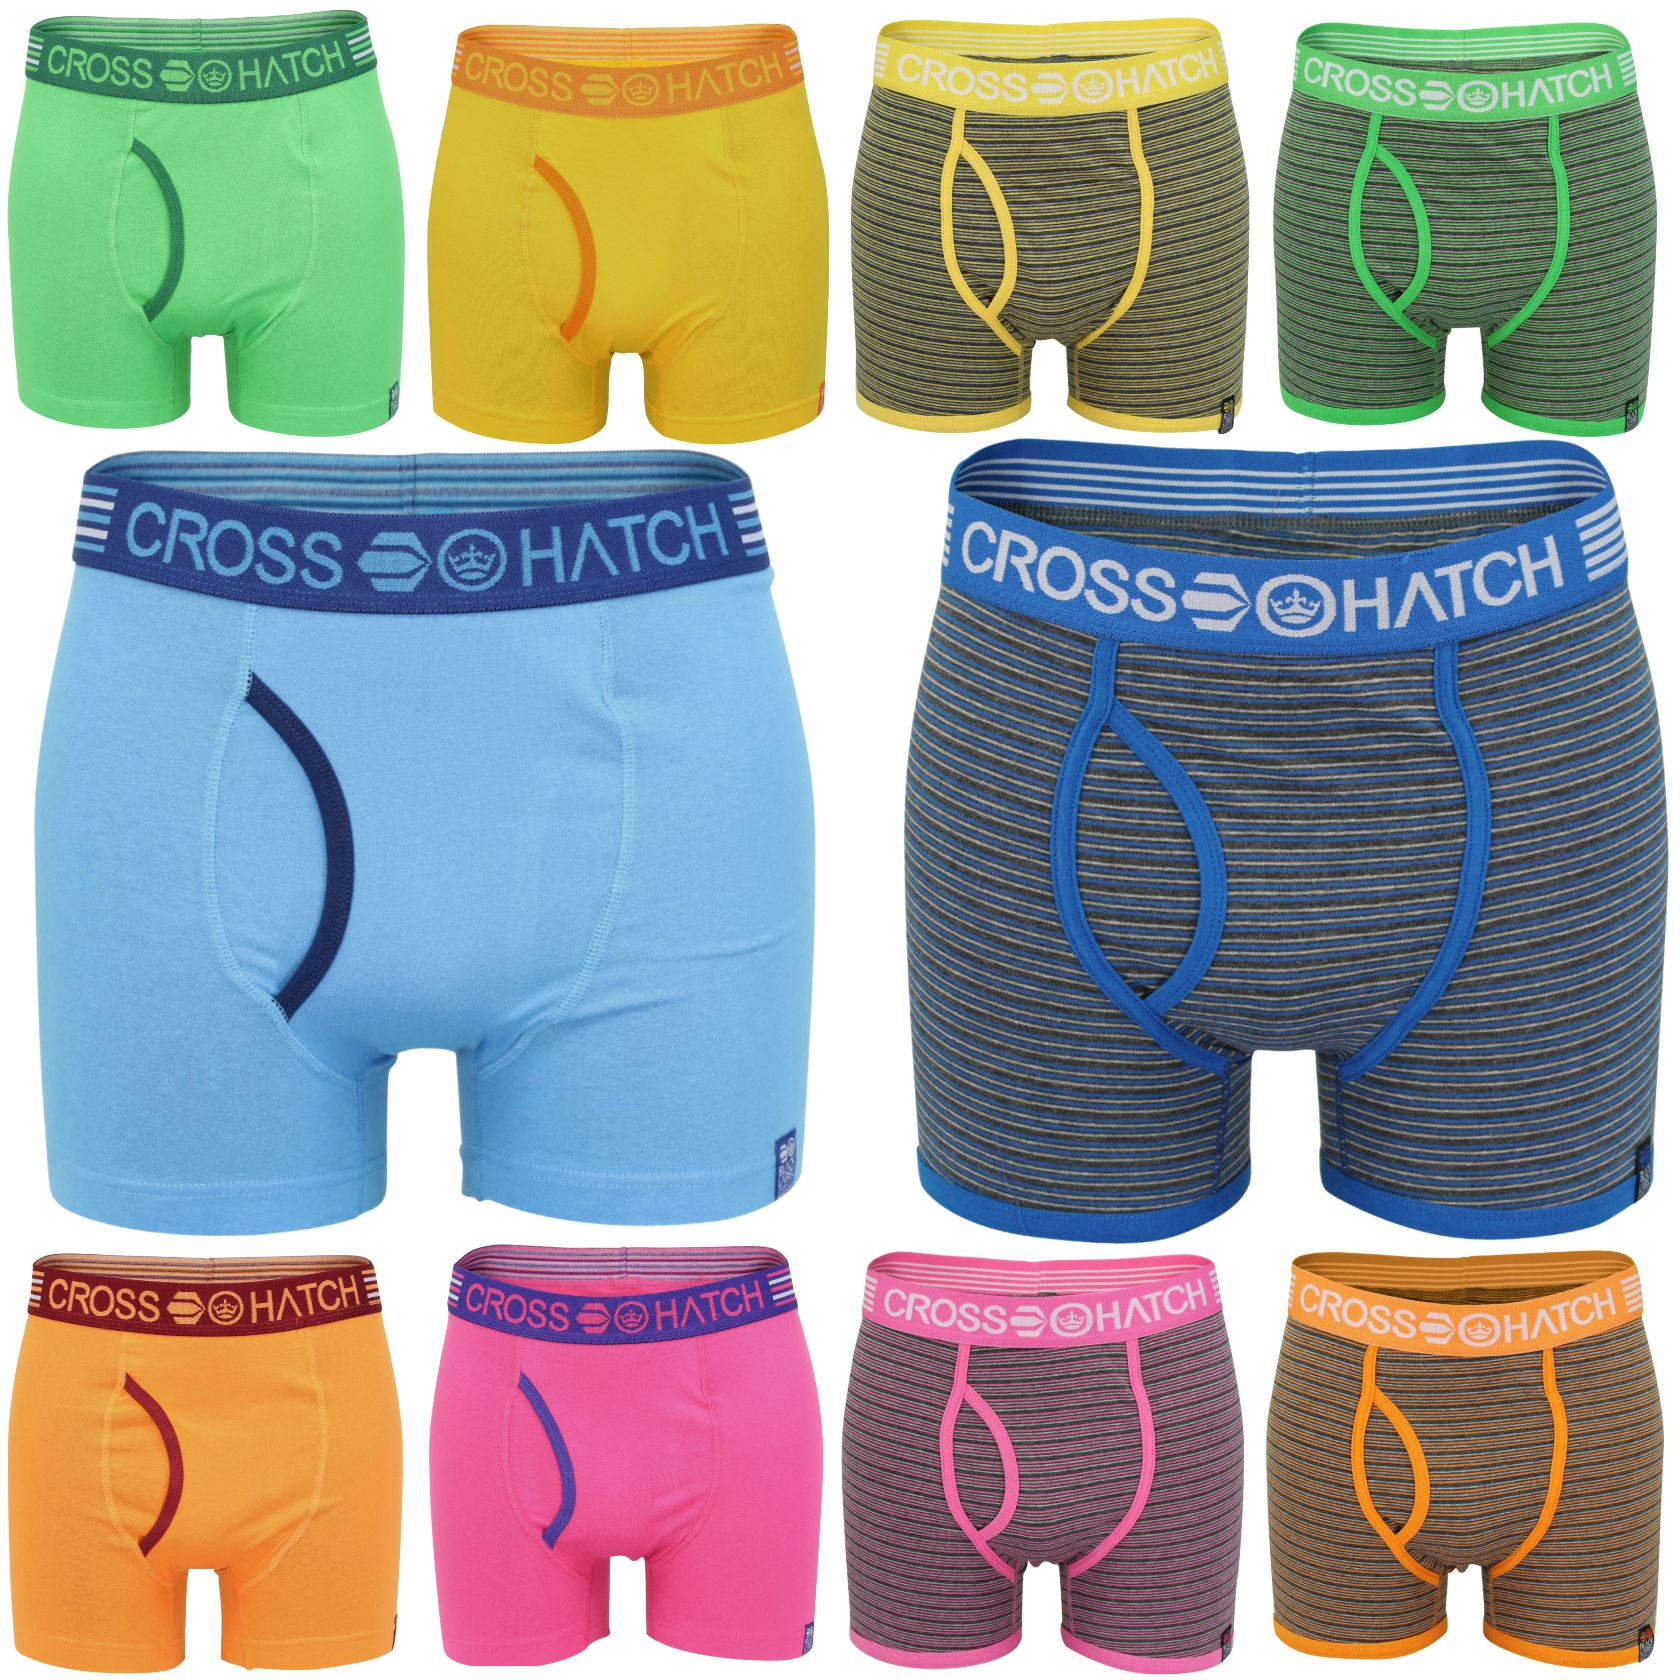 Mens Boxer Shorts Crosshatch Fireglow Bright Colours Underwear Trunks Stretch-Main Image